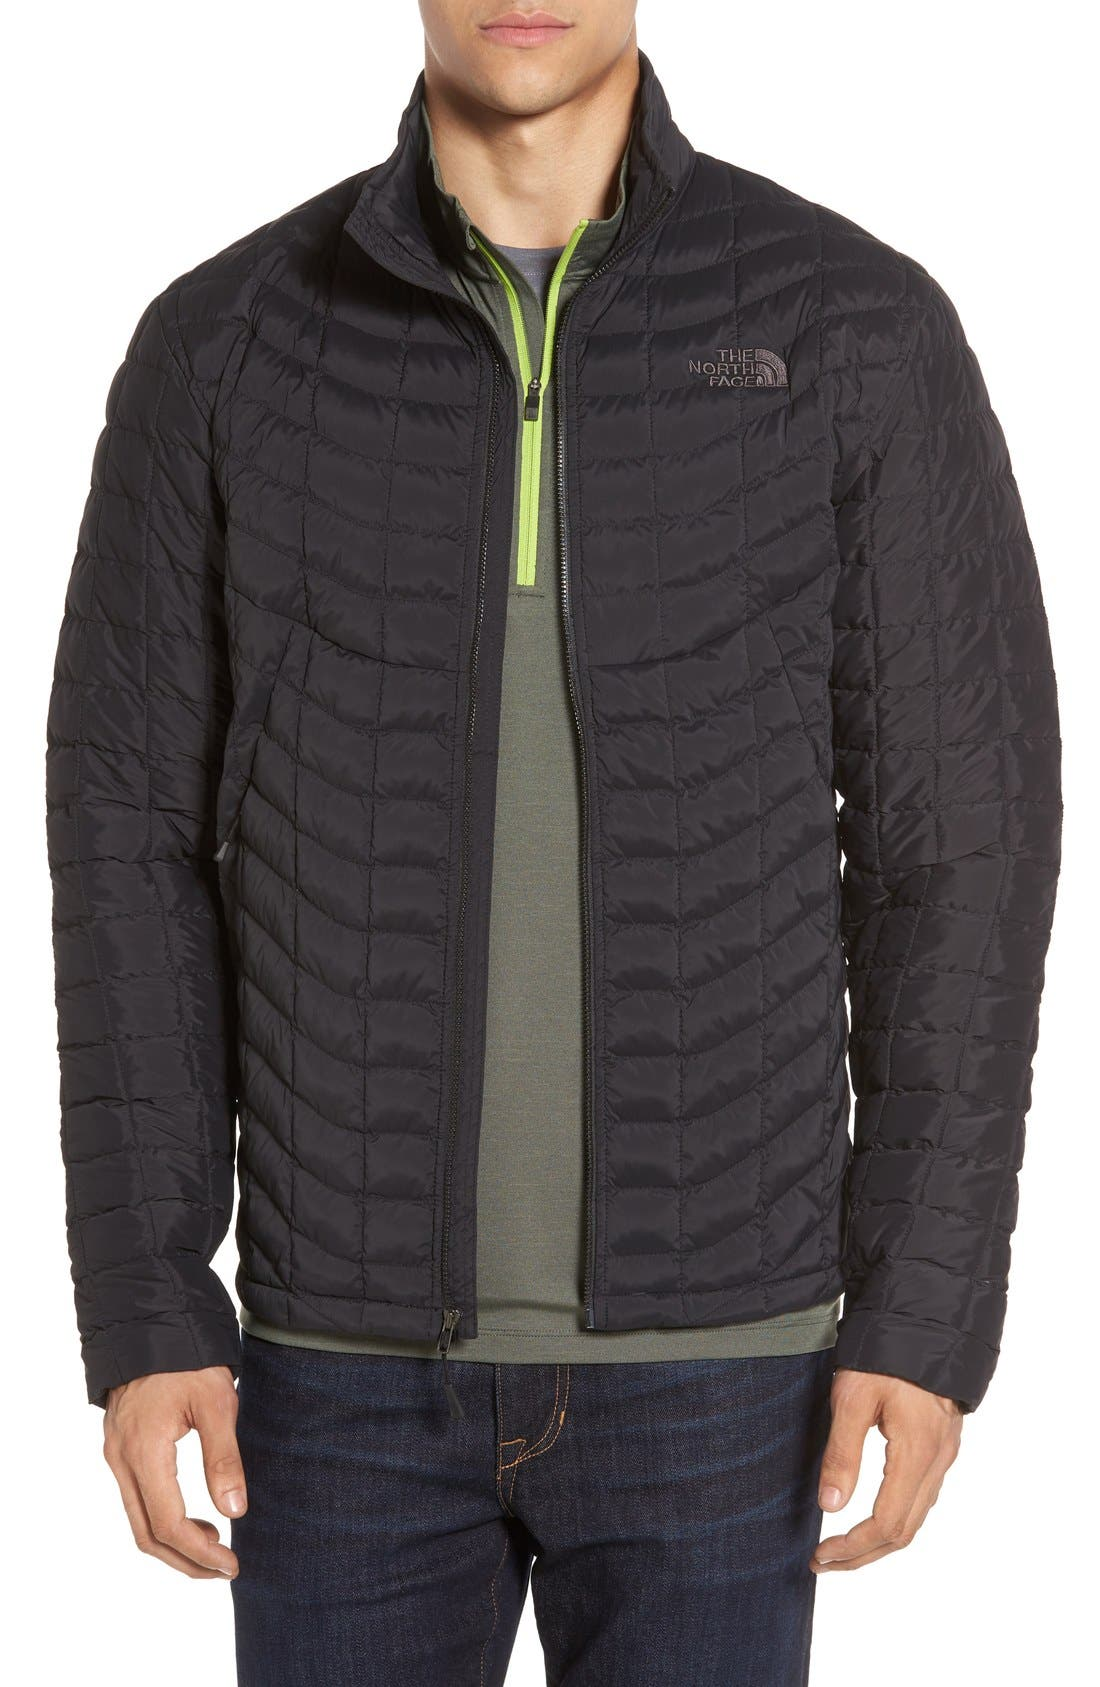 THE NORTH FACE Packable Stretch ThermoBall<sup>™</sup> PrimaLoft<sup>®</sup> Jacket